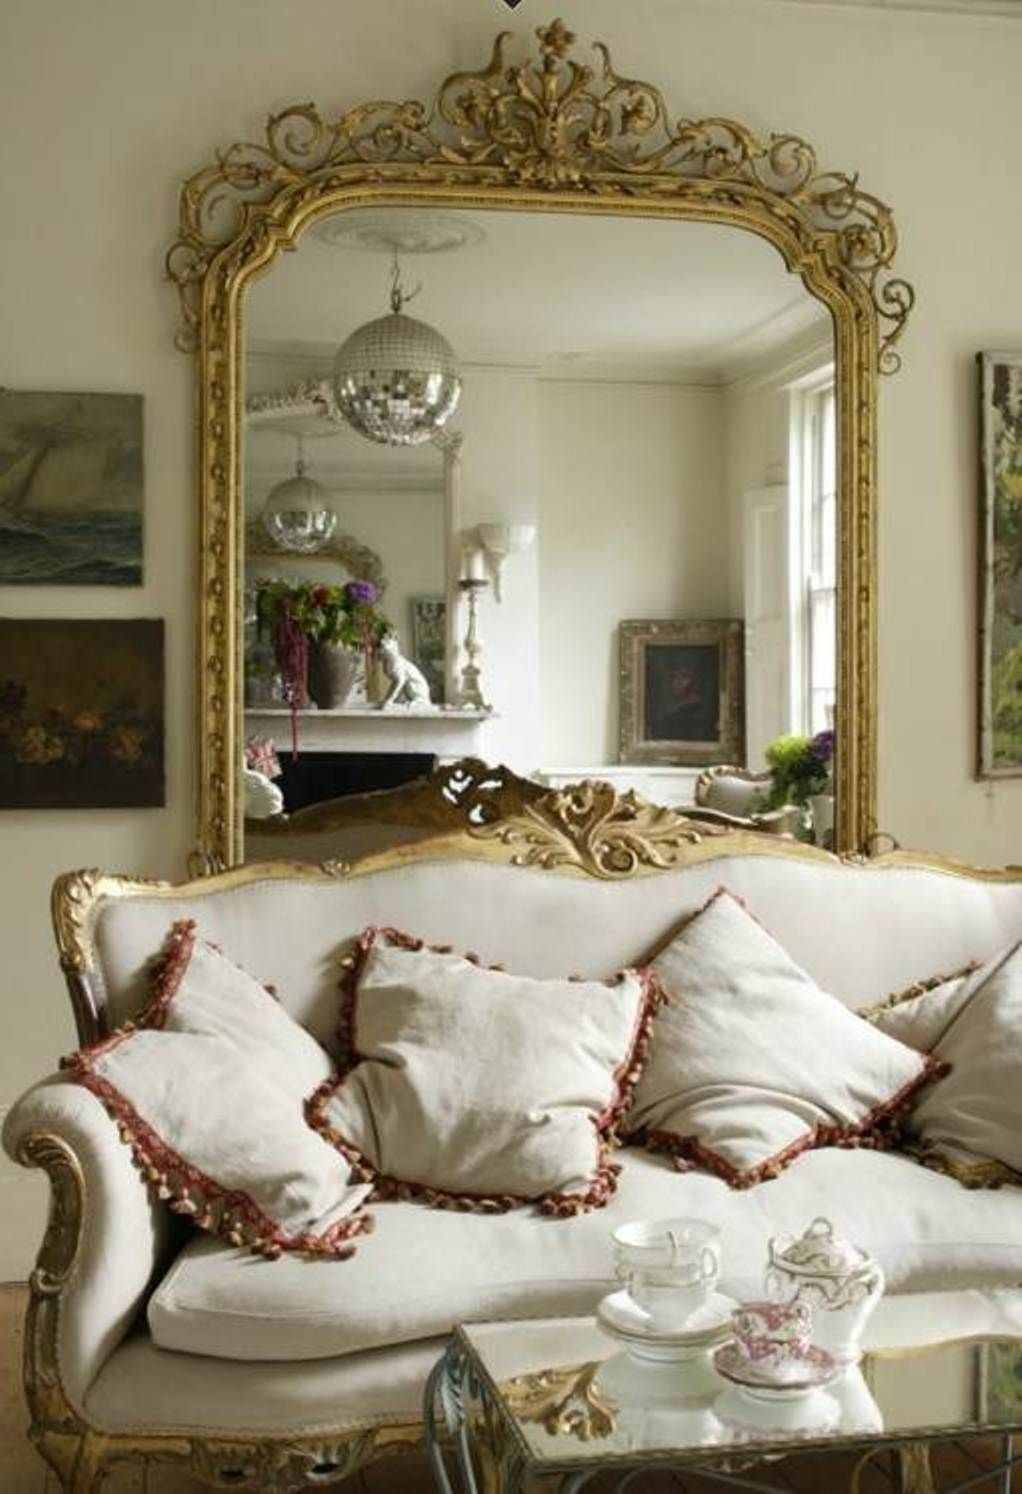 Cool Decorative Wall Mirrors For Living Room Add Interest, Light And Depth  To Your Living Room With Wall Mirrors. Wall Mirrors For Living Room Provide  A ...